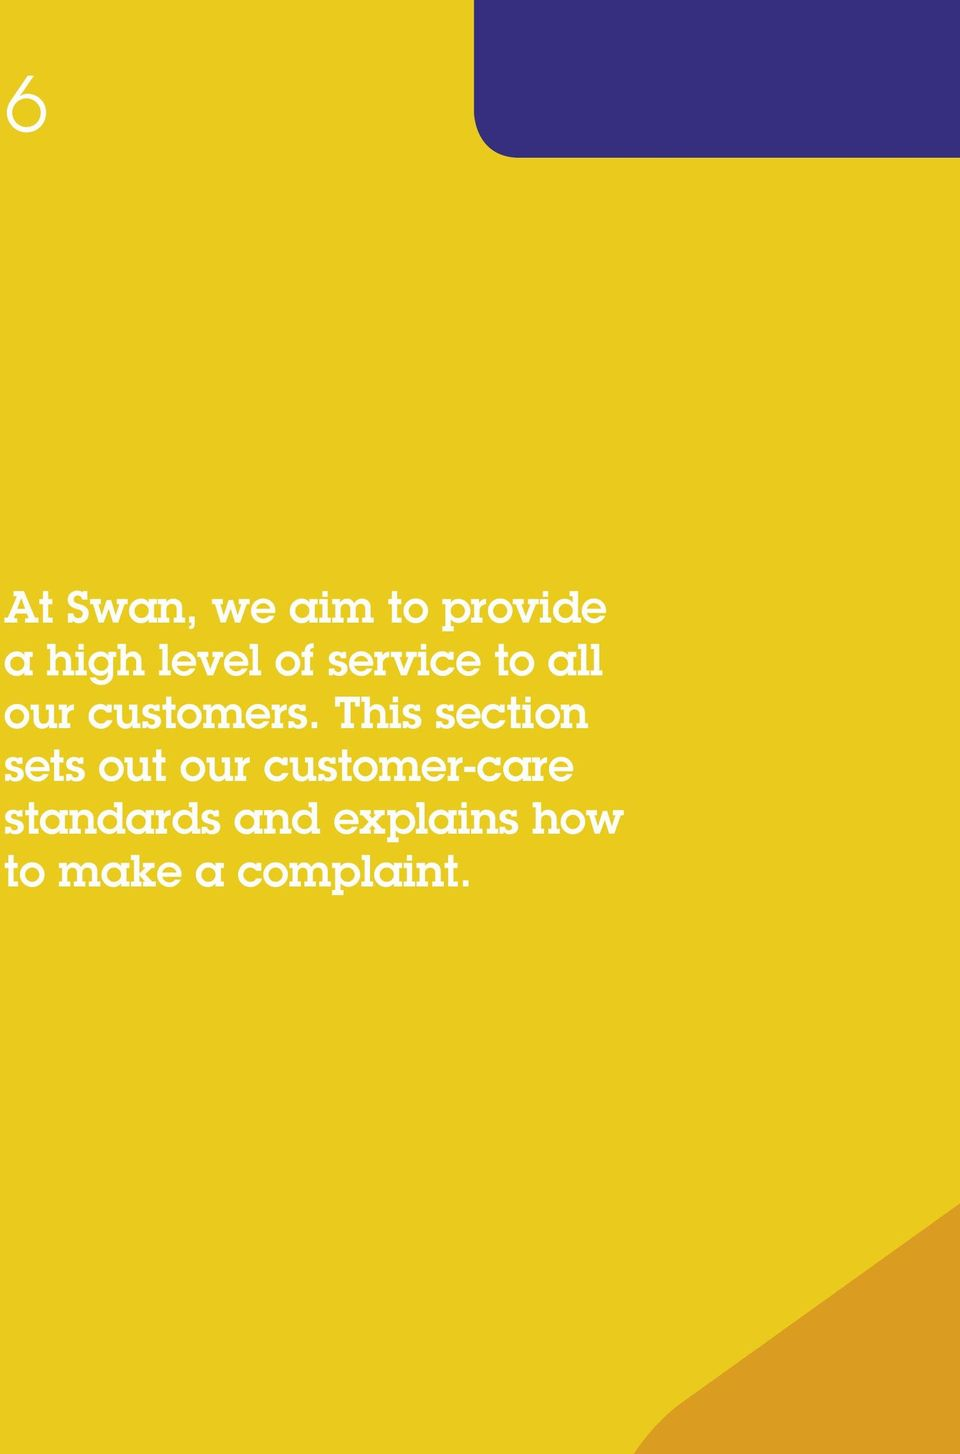 This section sets out our customer-care